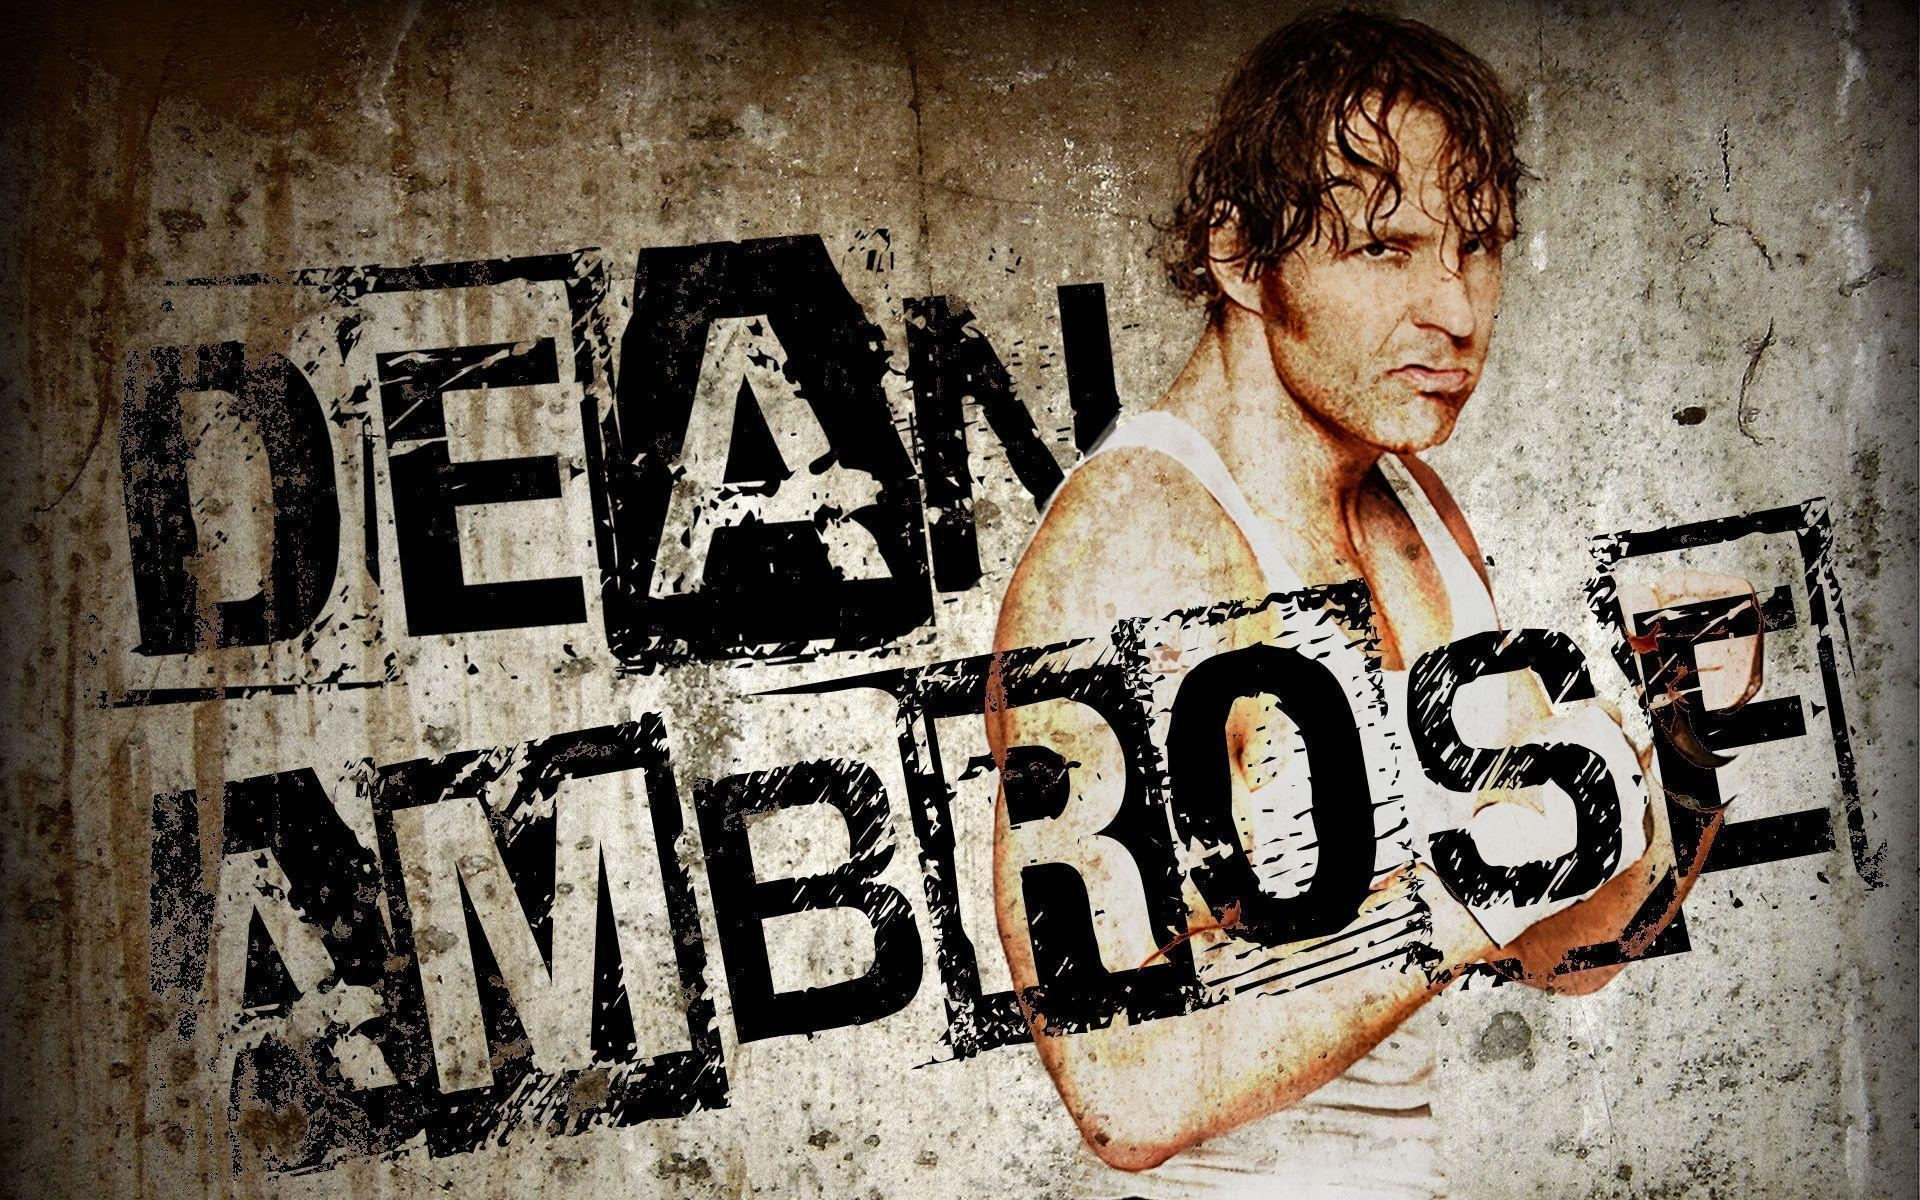 10 New Wwe Dean Ambrose Wallpaper FULL HD 1920×1080 For PC Background